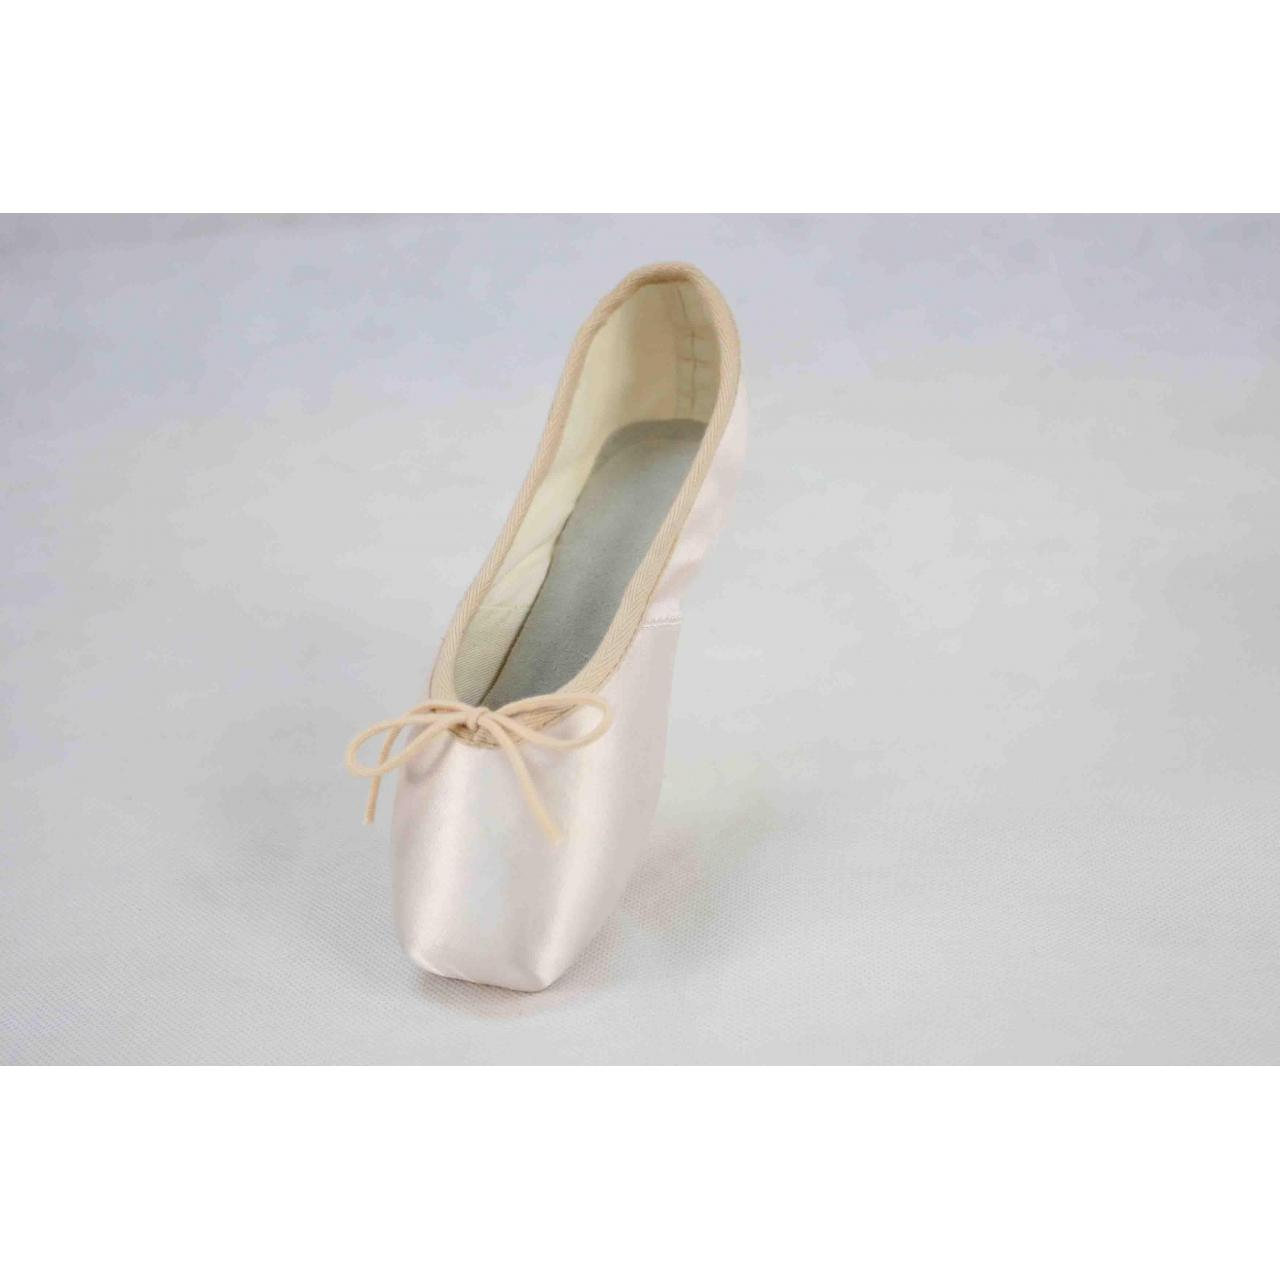 Light Industrial Products pointeballetshoe 2231524216